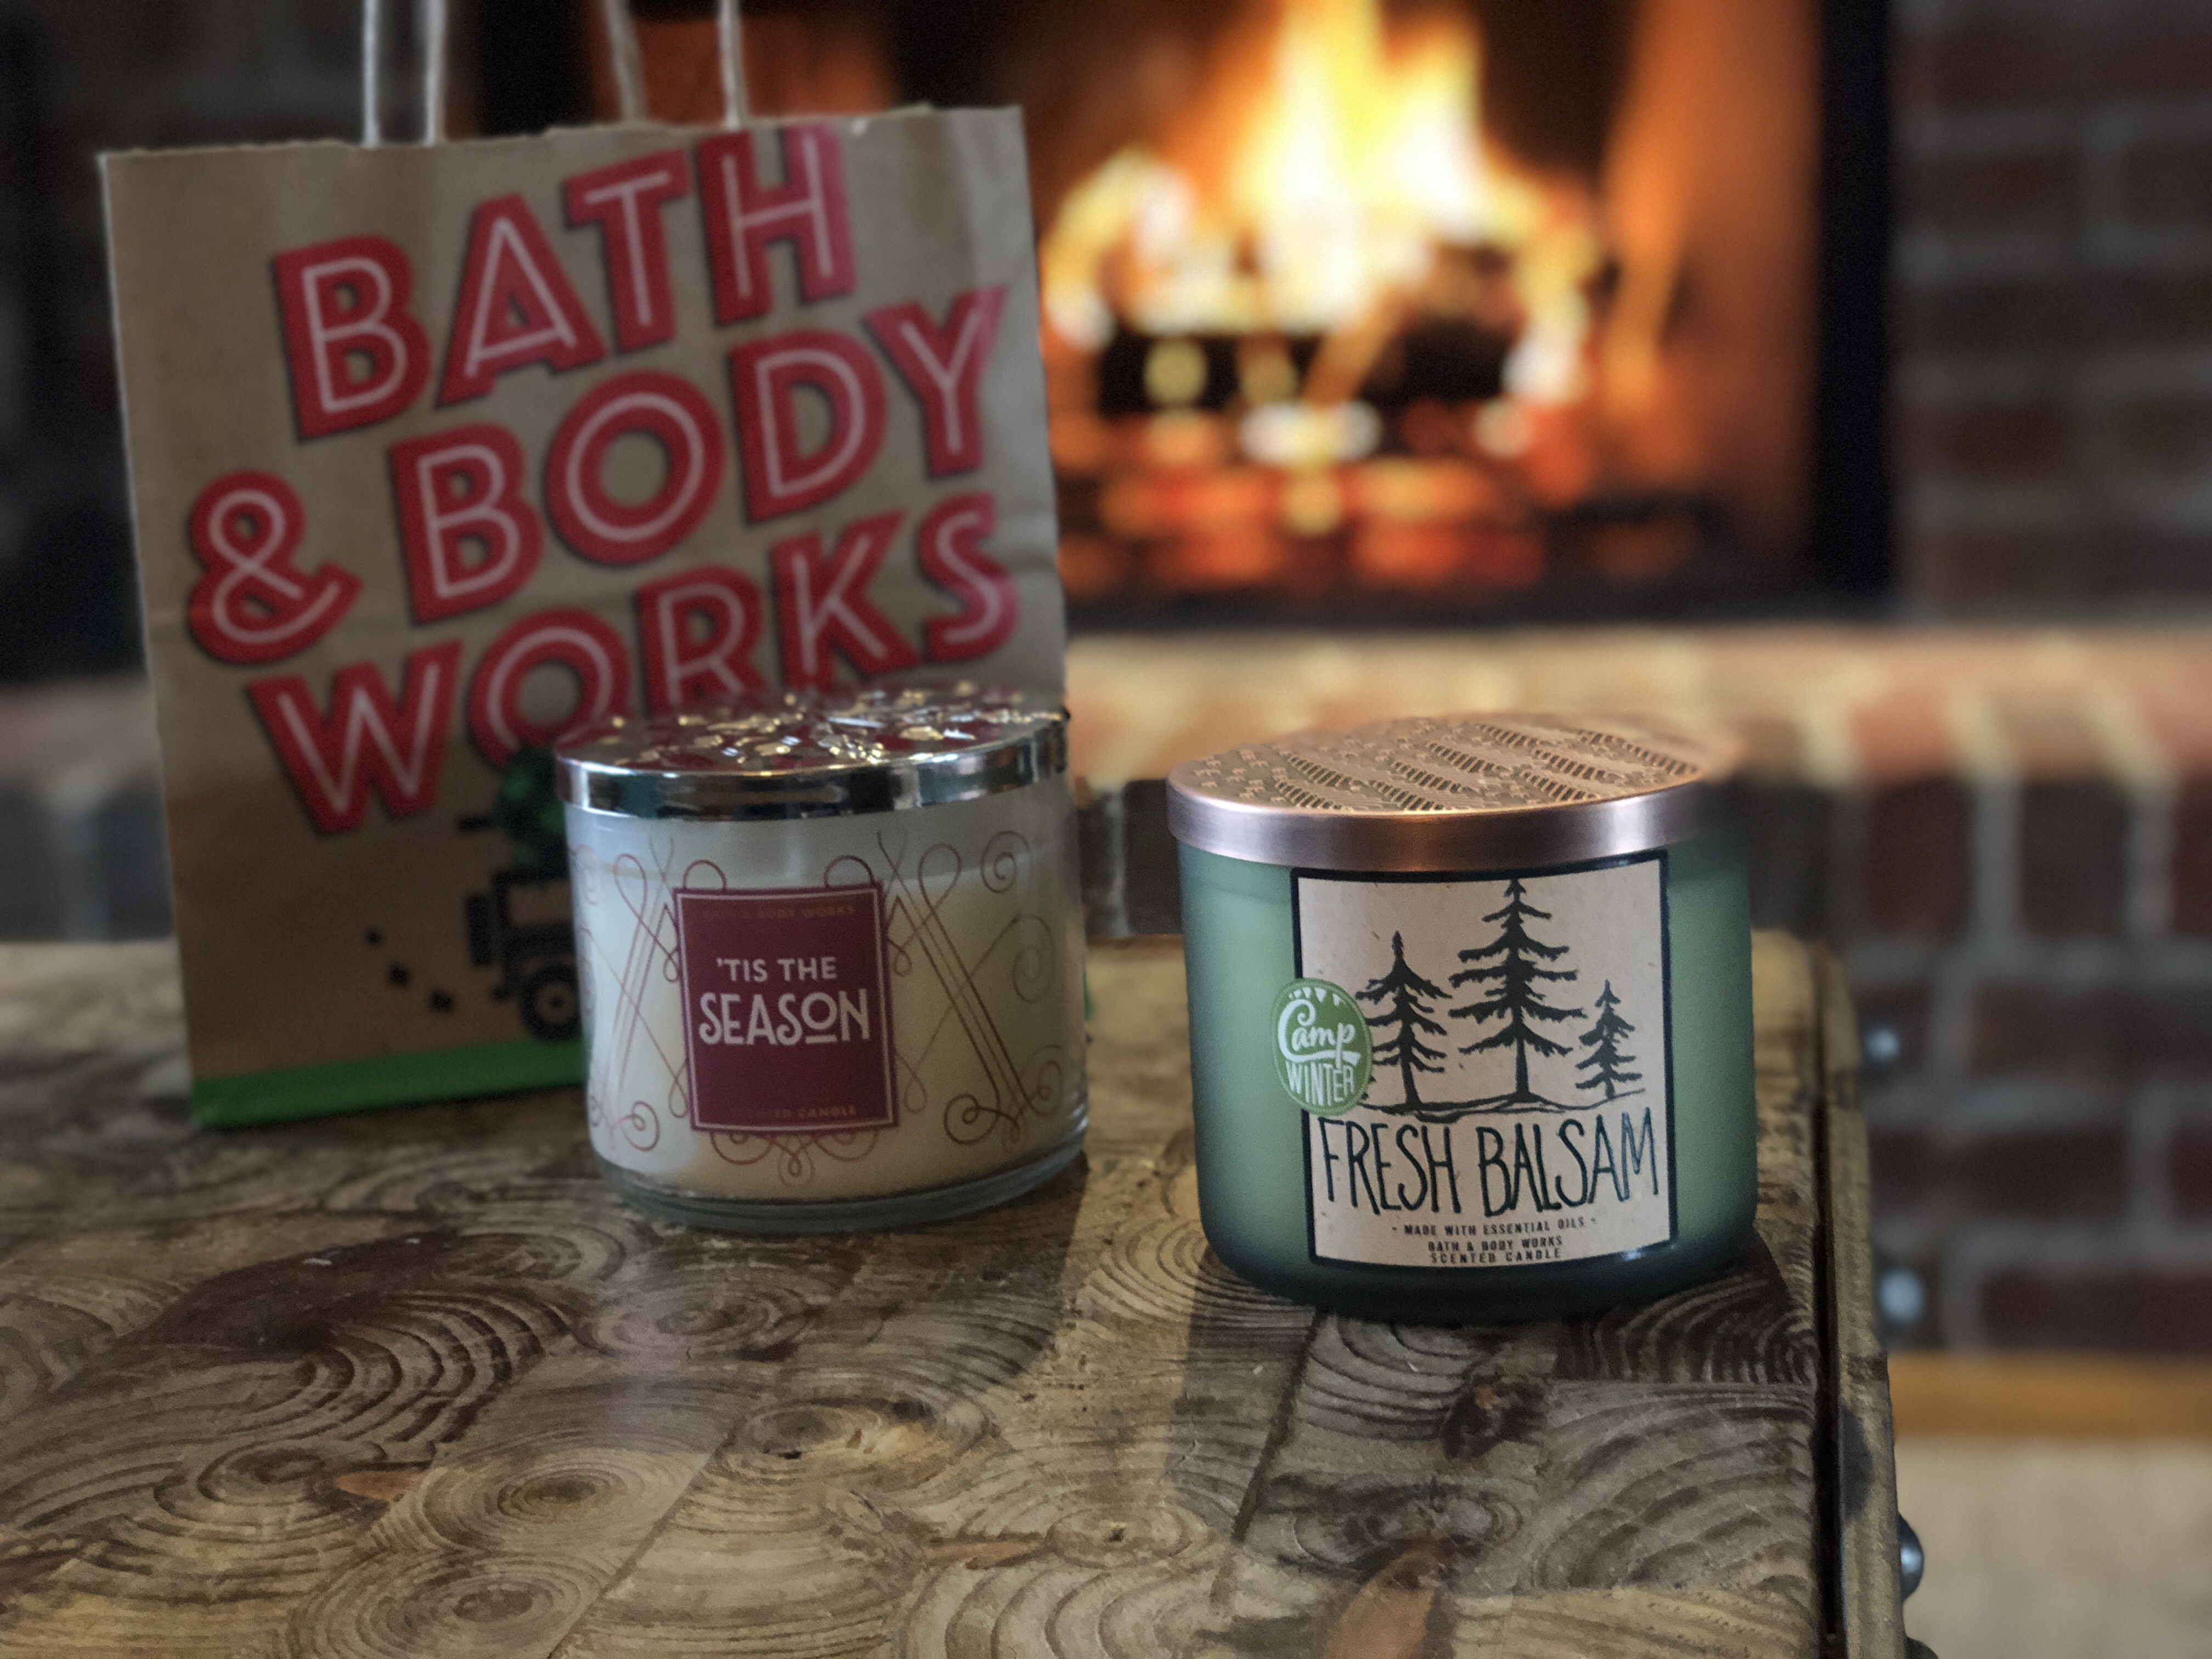 16 Secrets For Saving Big At Bath Body Works Candles On A Table Near